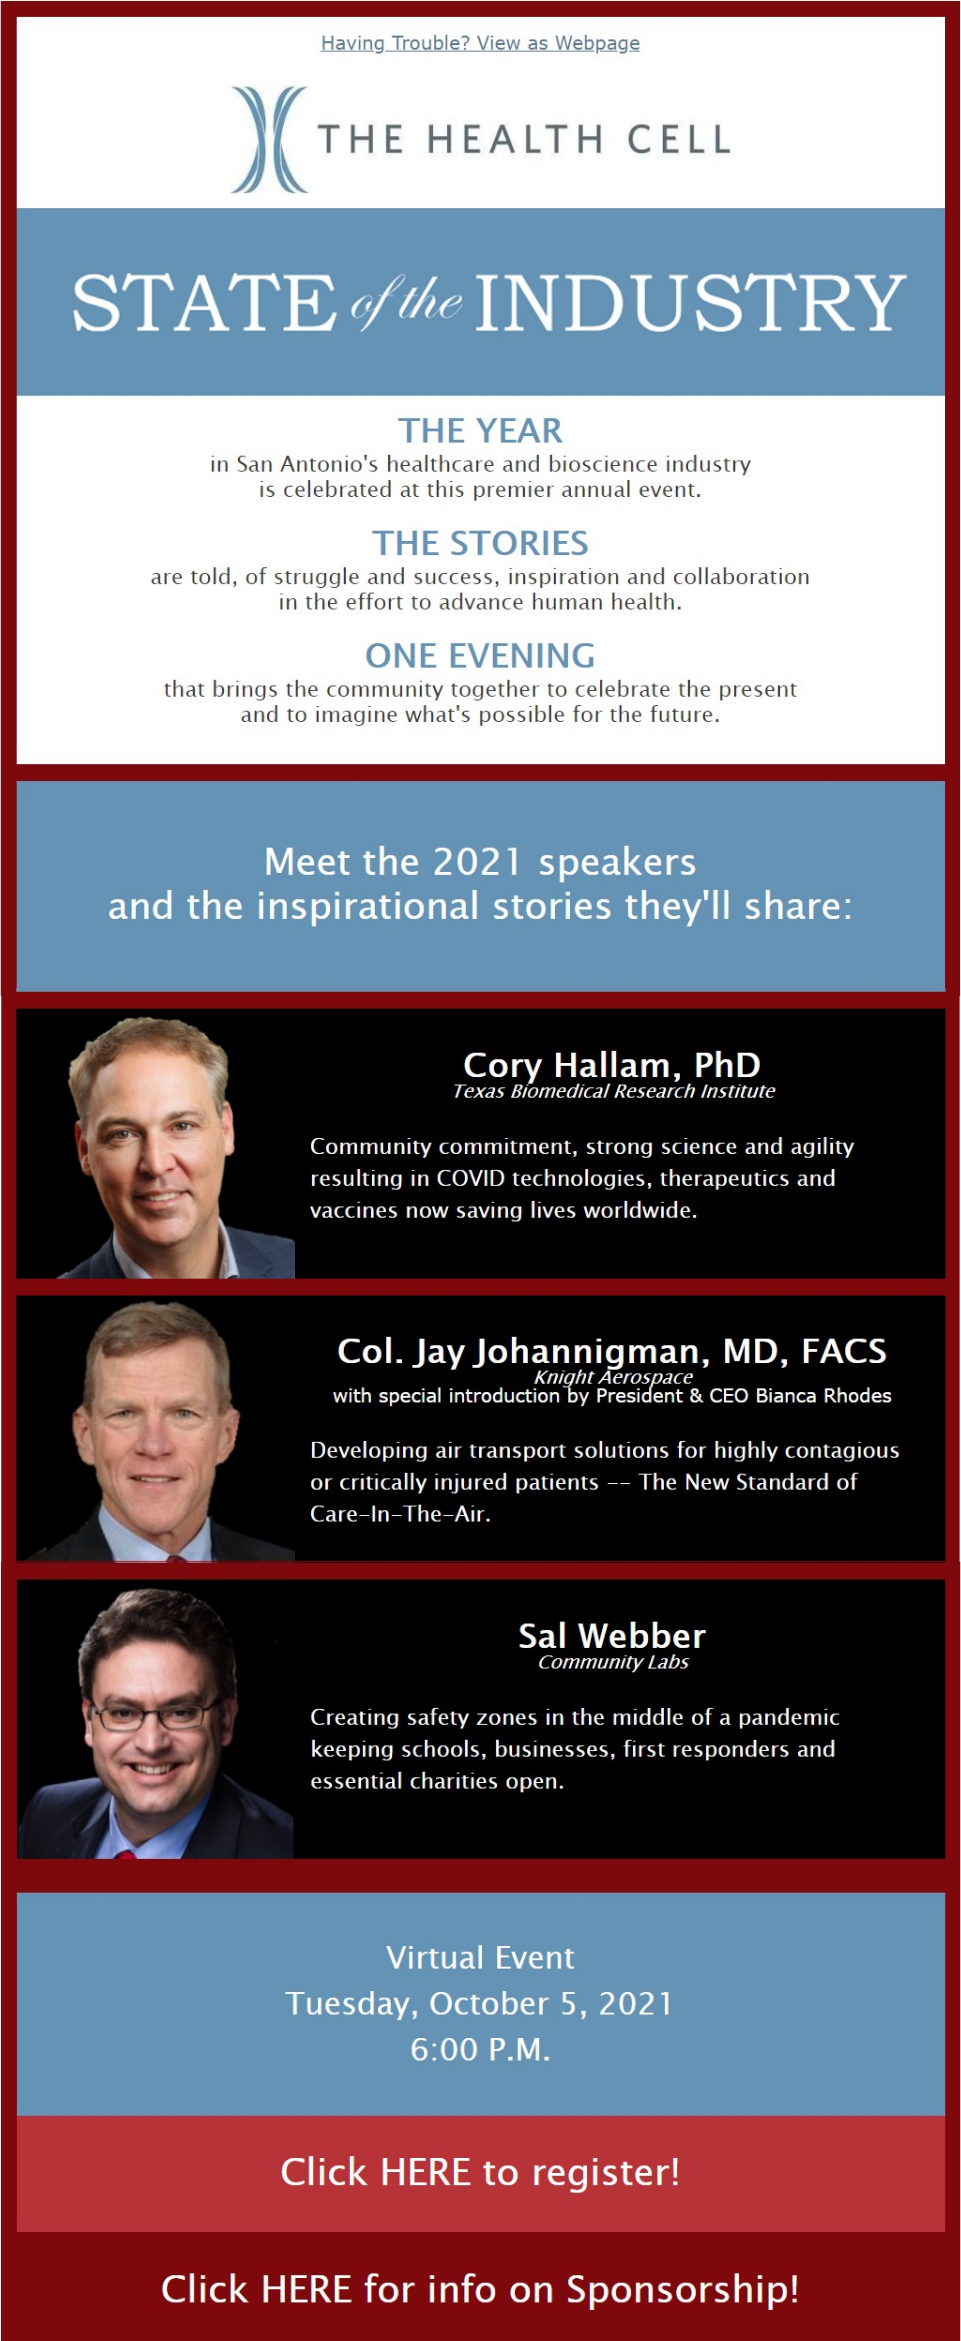 The Health Cell October 2021 Event